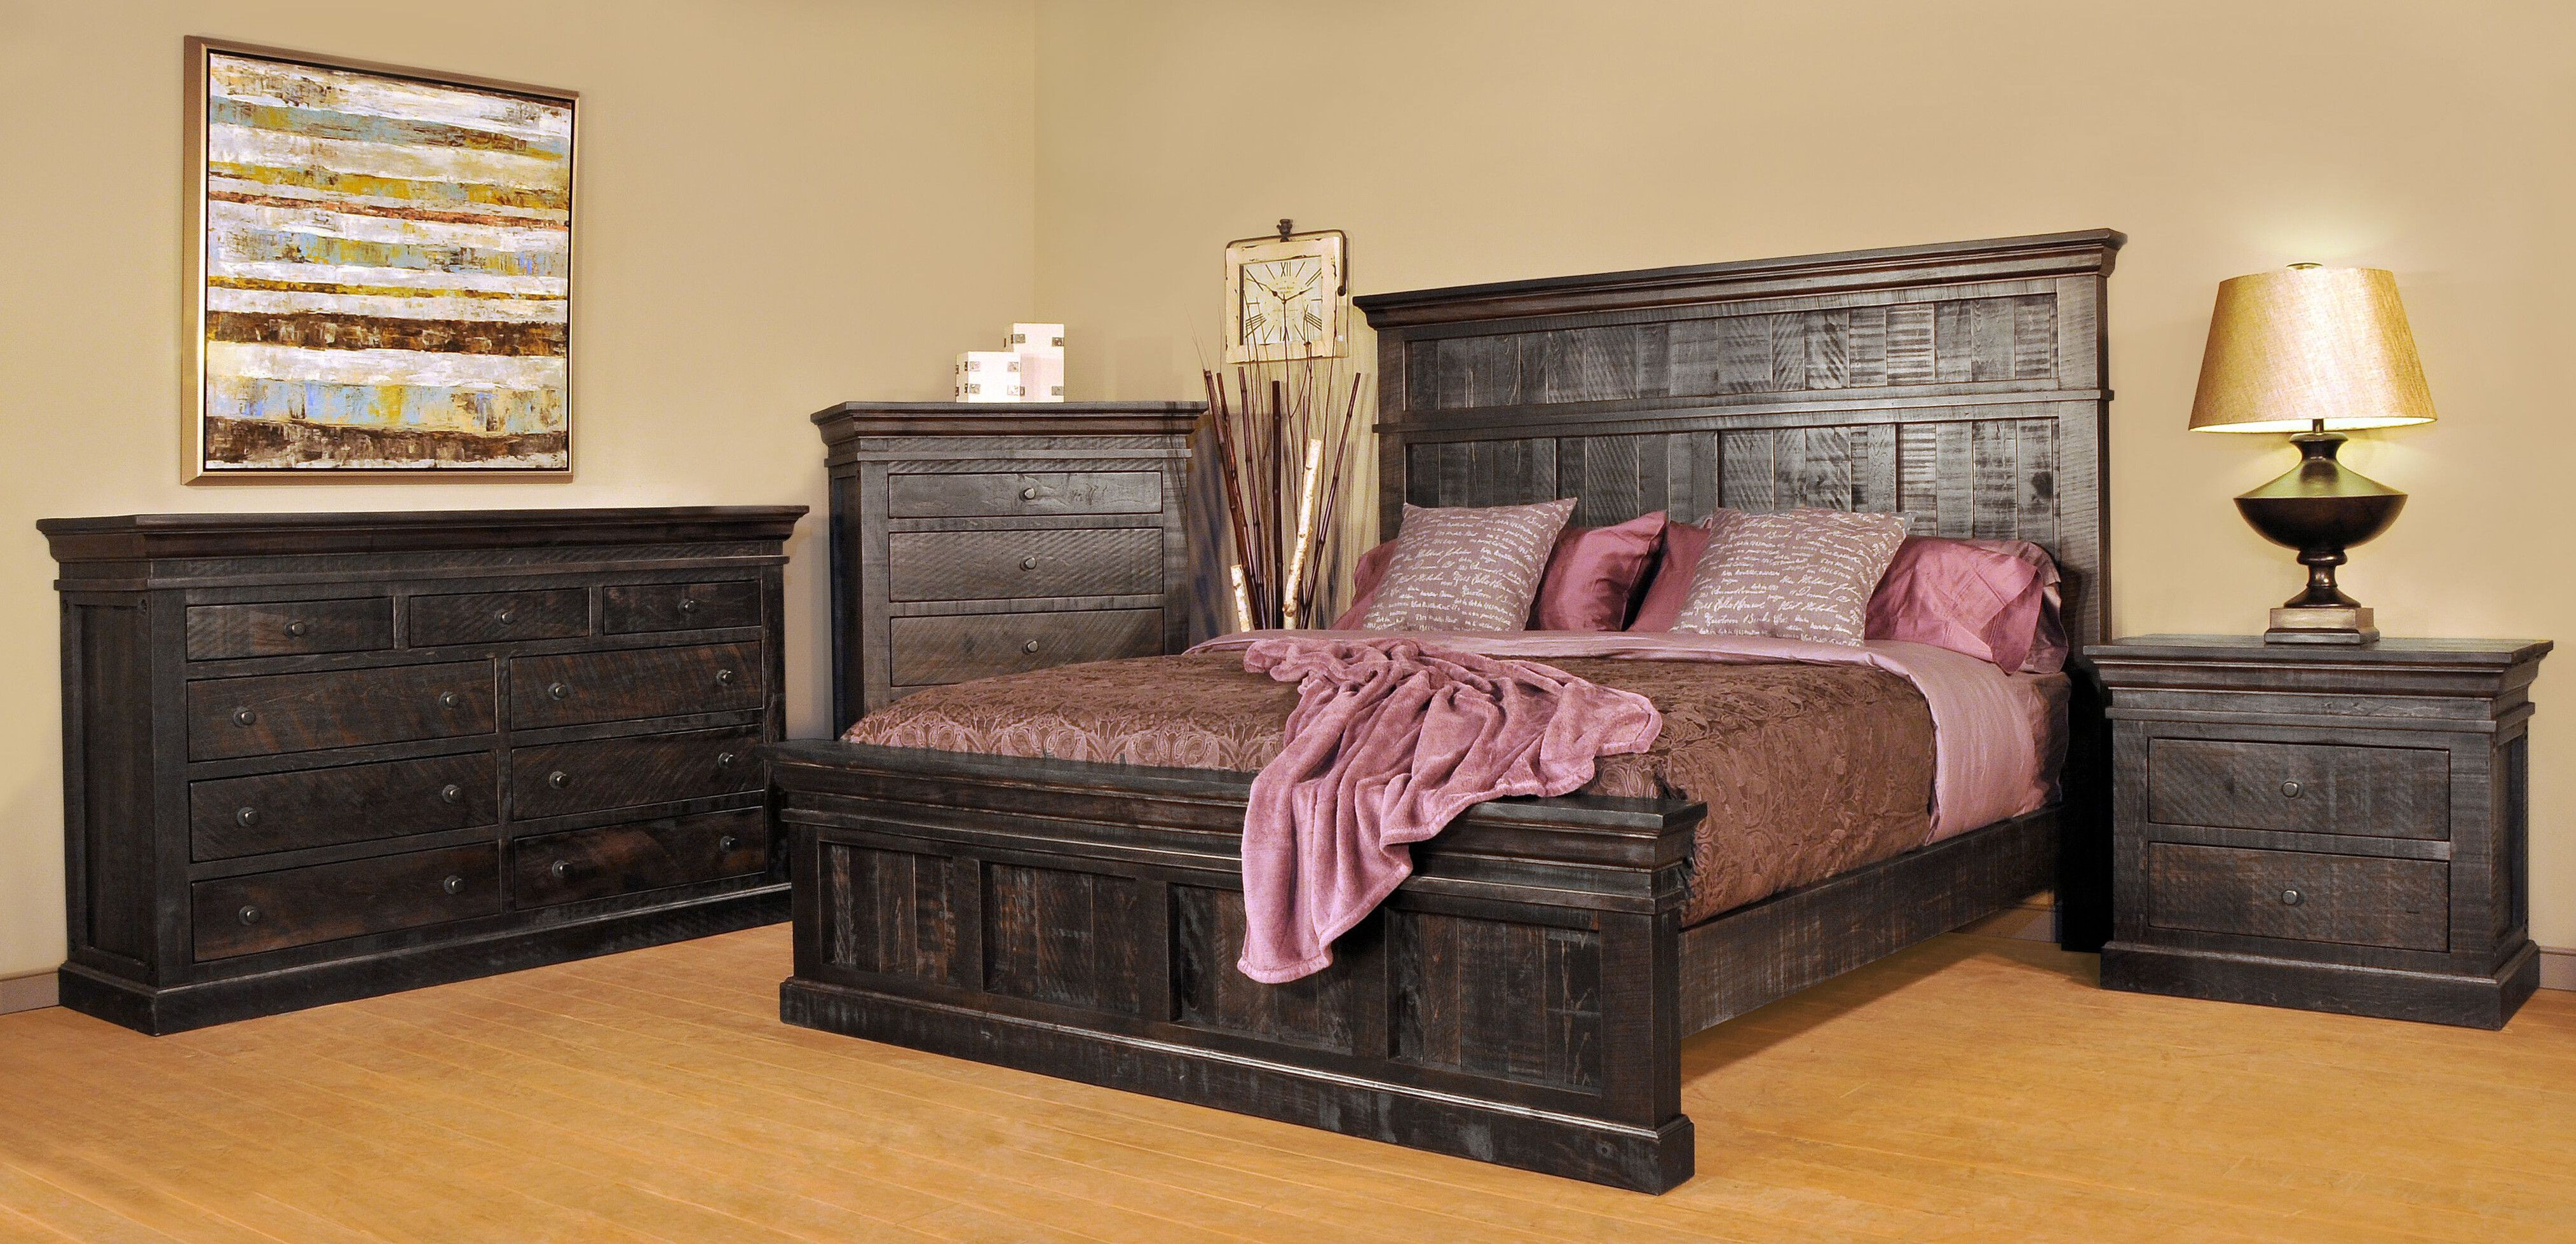 Ruff Sawn Keatsway Bedroom Furniture Collection